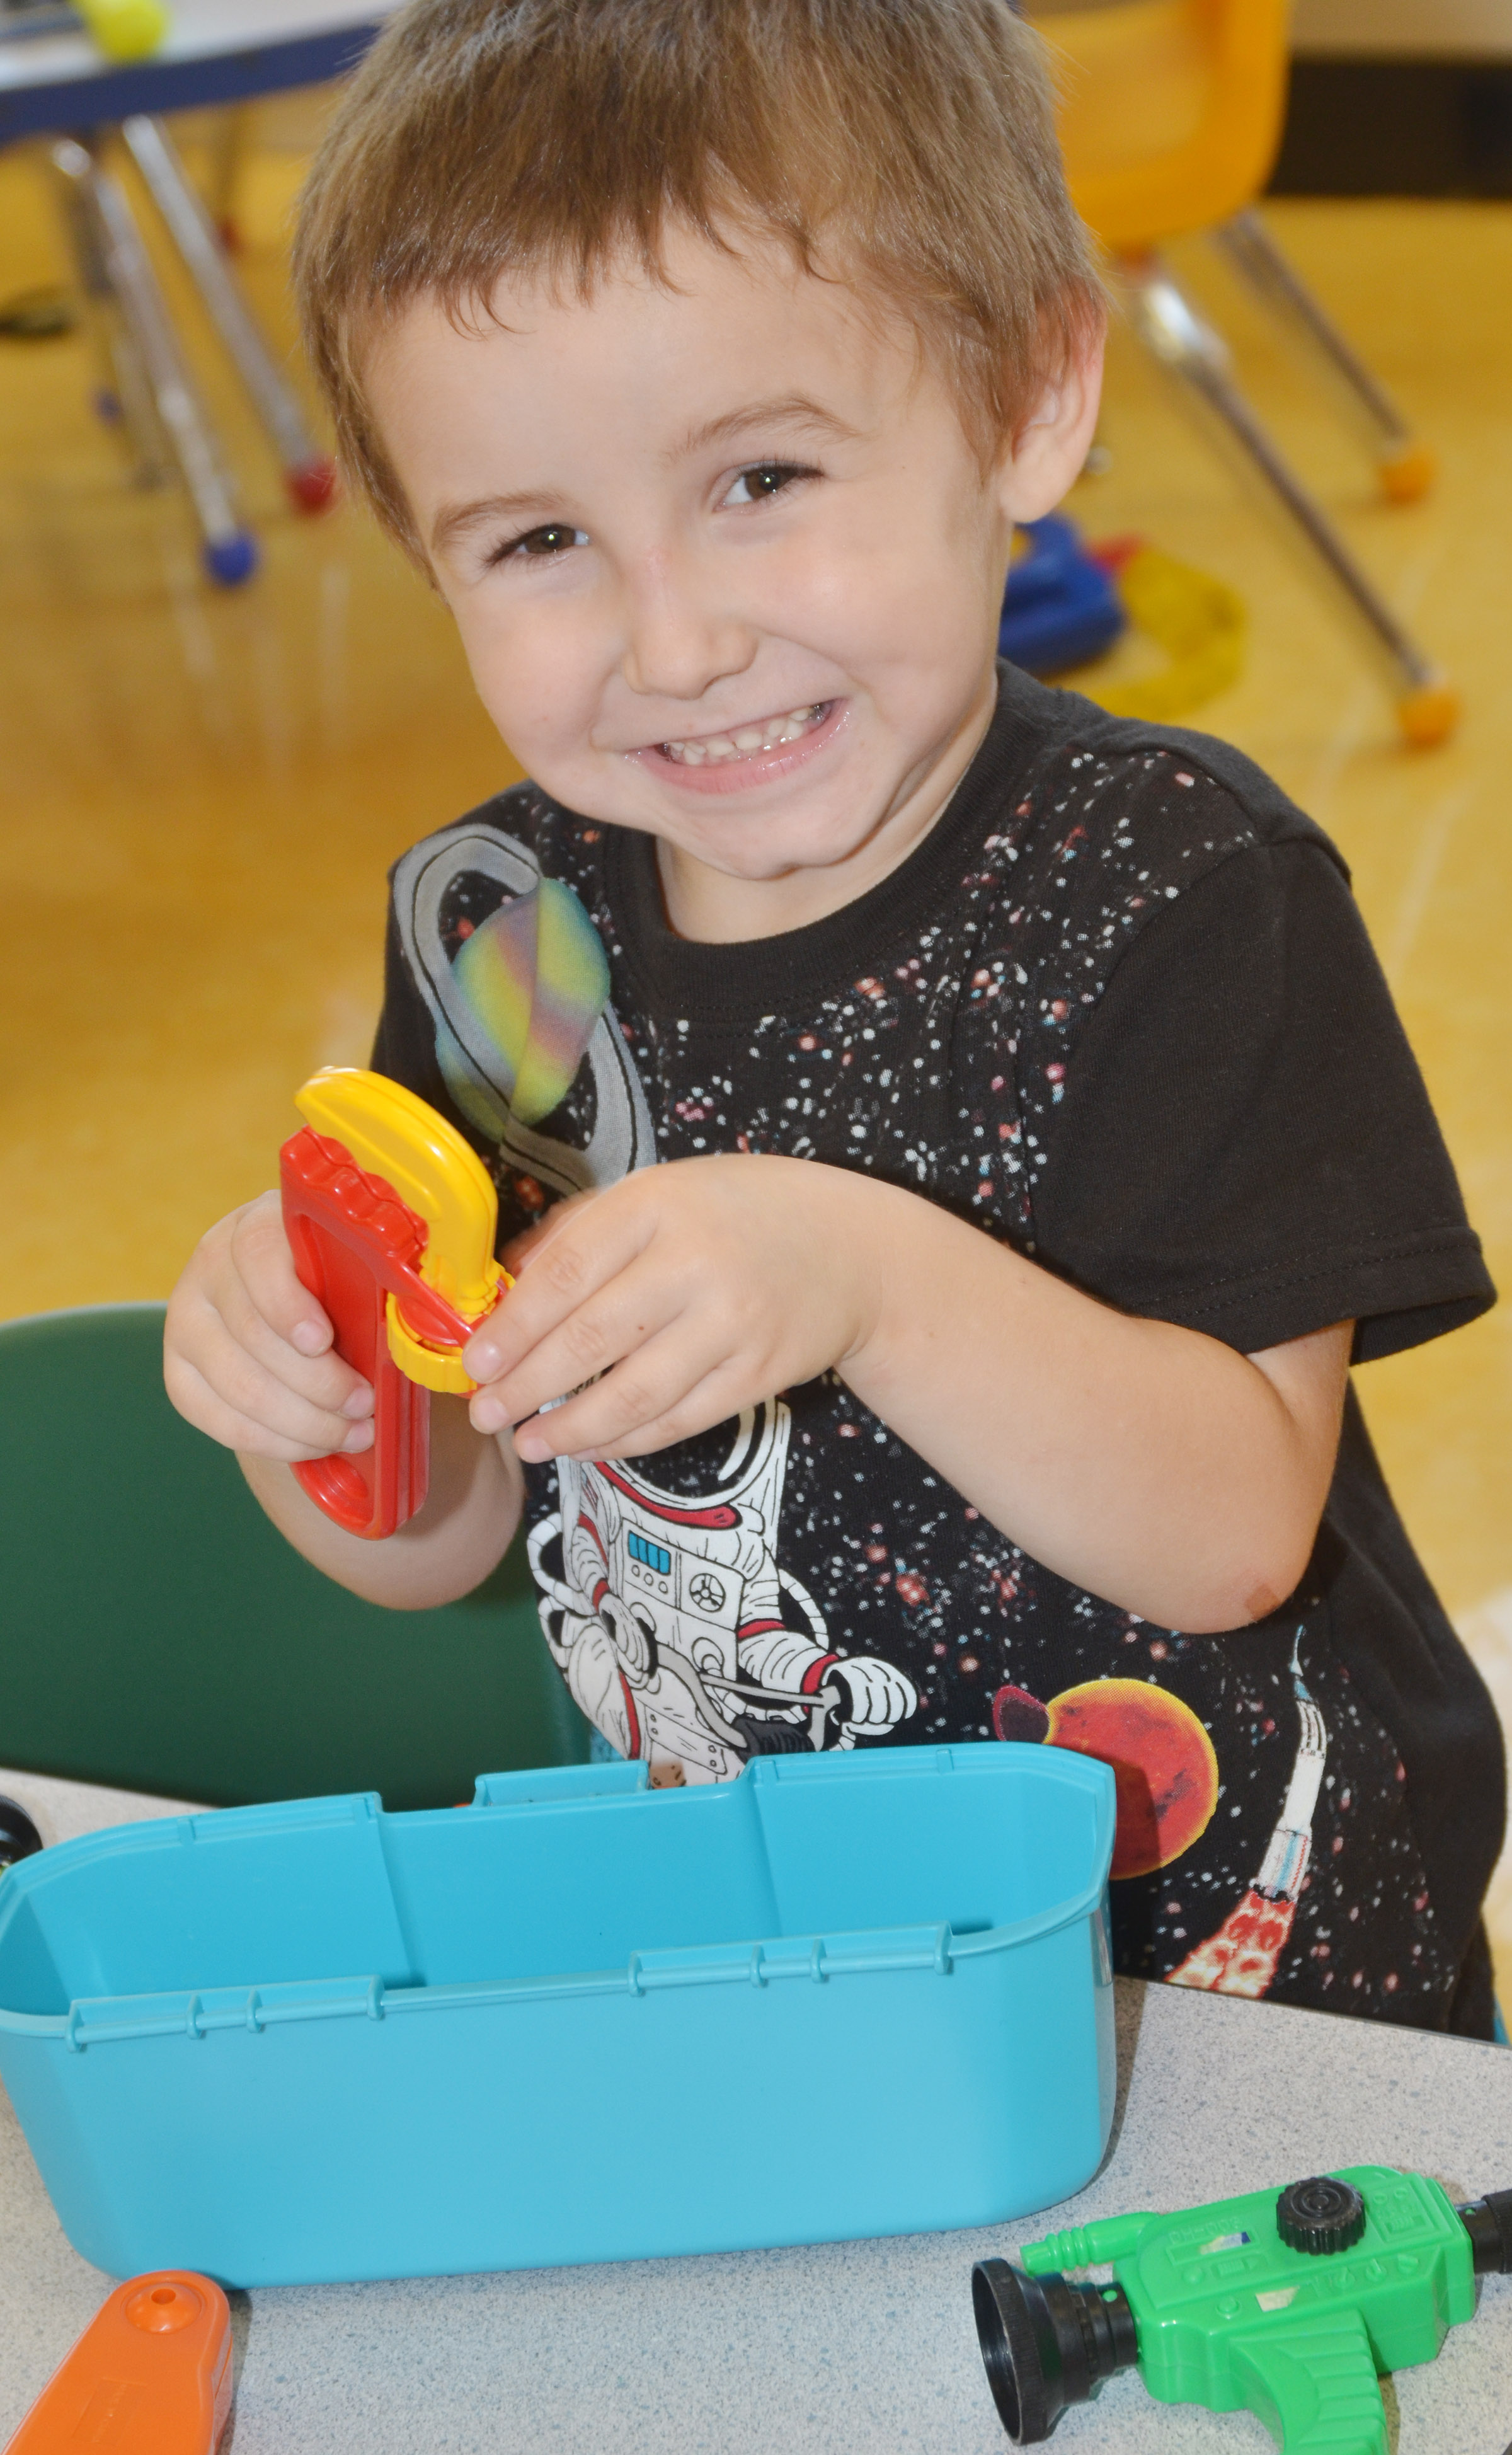 CES preschool student Noelan McMahan smiles as he plays with his tools.